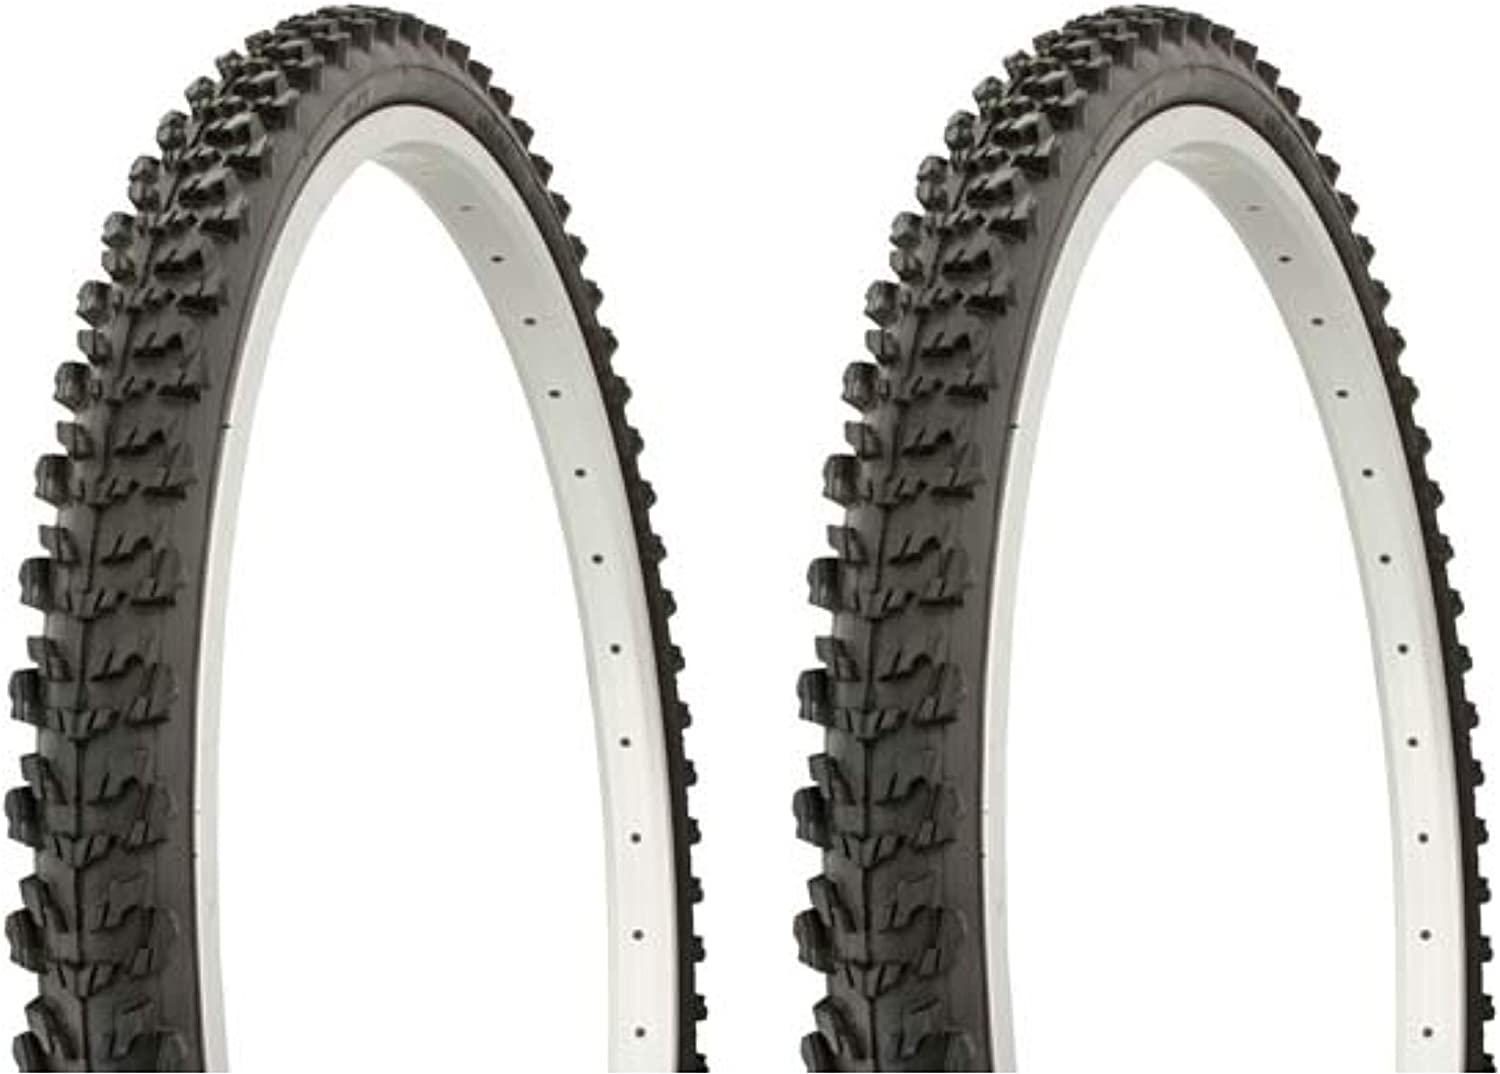 Two Tire Duro 26  x 1.75  Black Black Side Wall HF827. Bicycle tire, bike tire, beach cruiser bike tire, cruiser bike tire